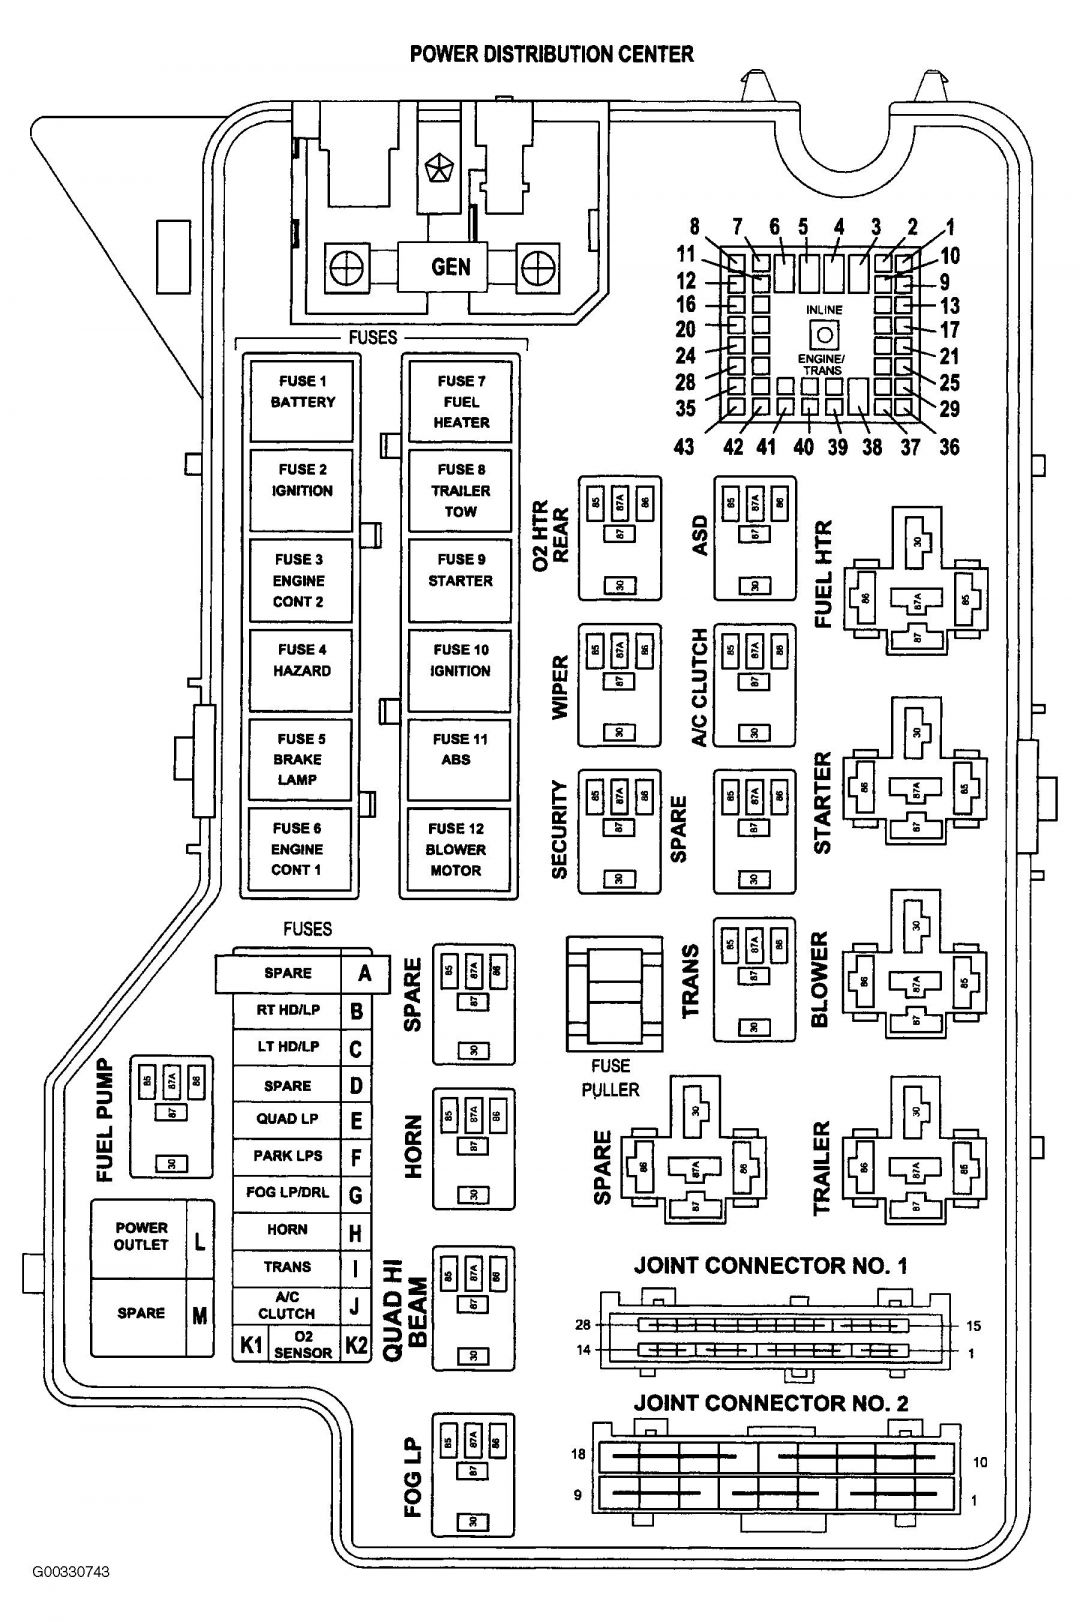 Dodge Truck Wiring Diagram And Ramcharger Wiring